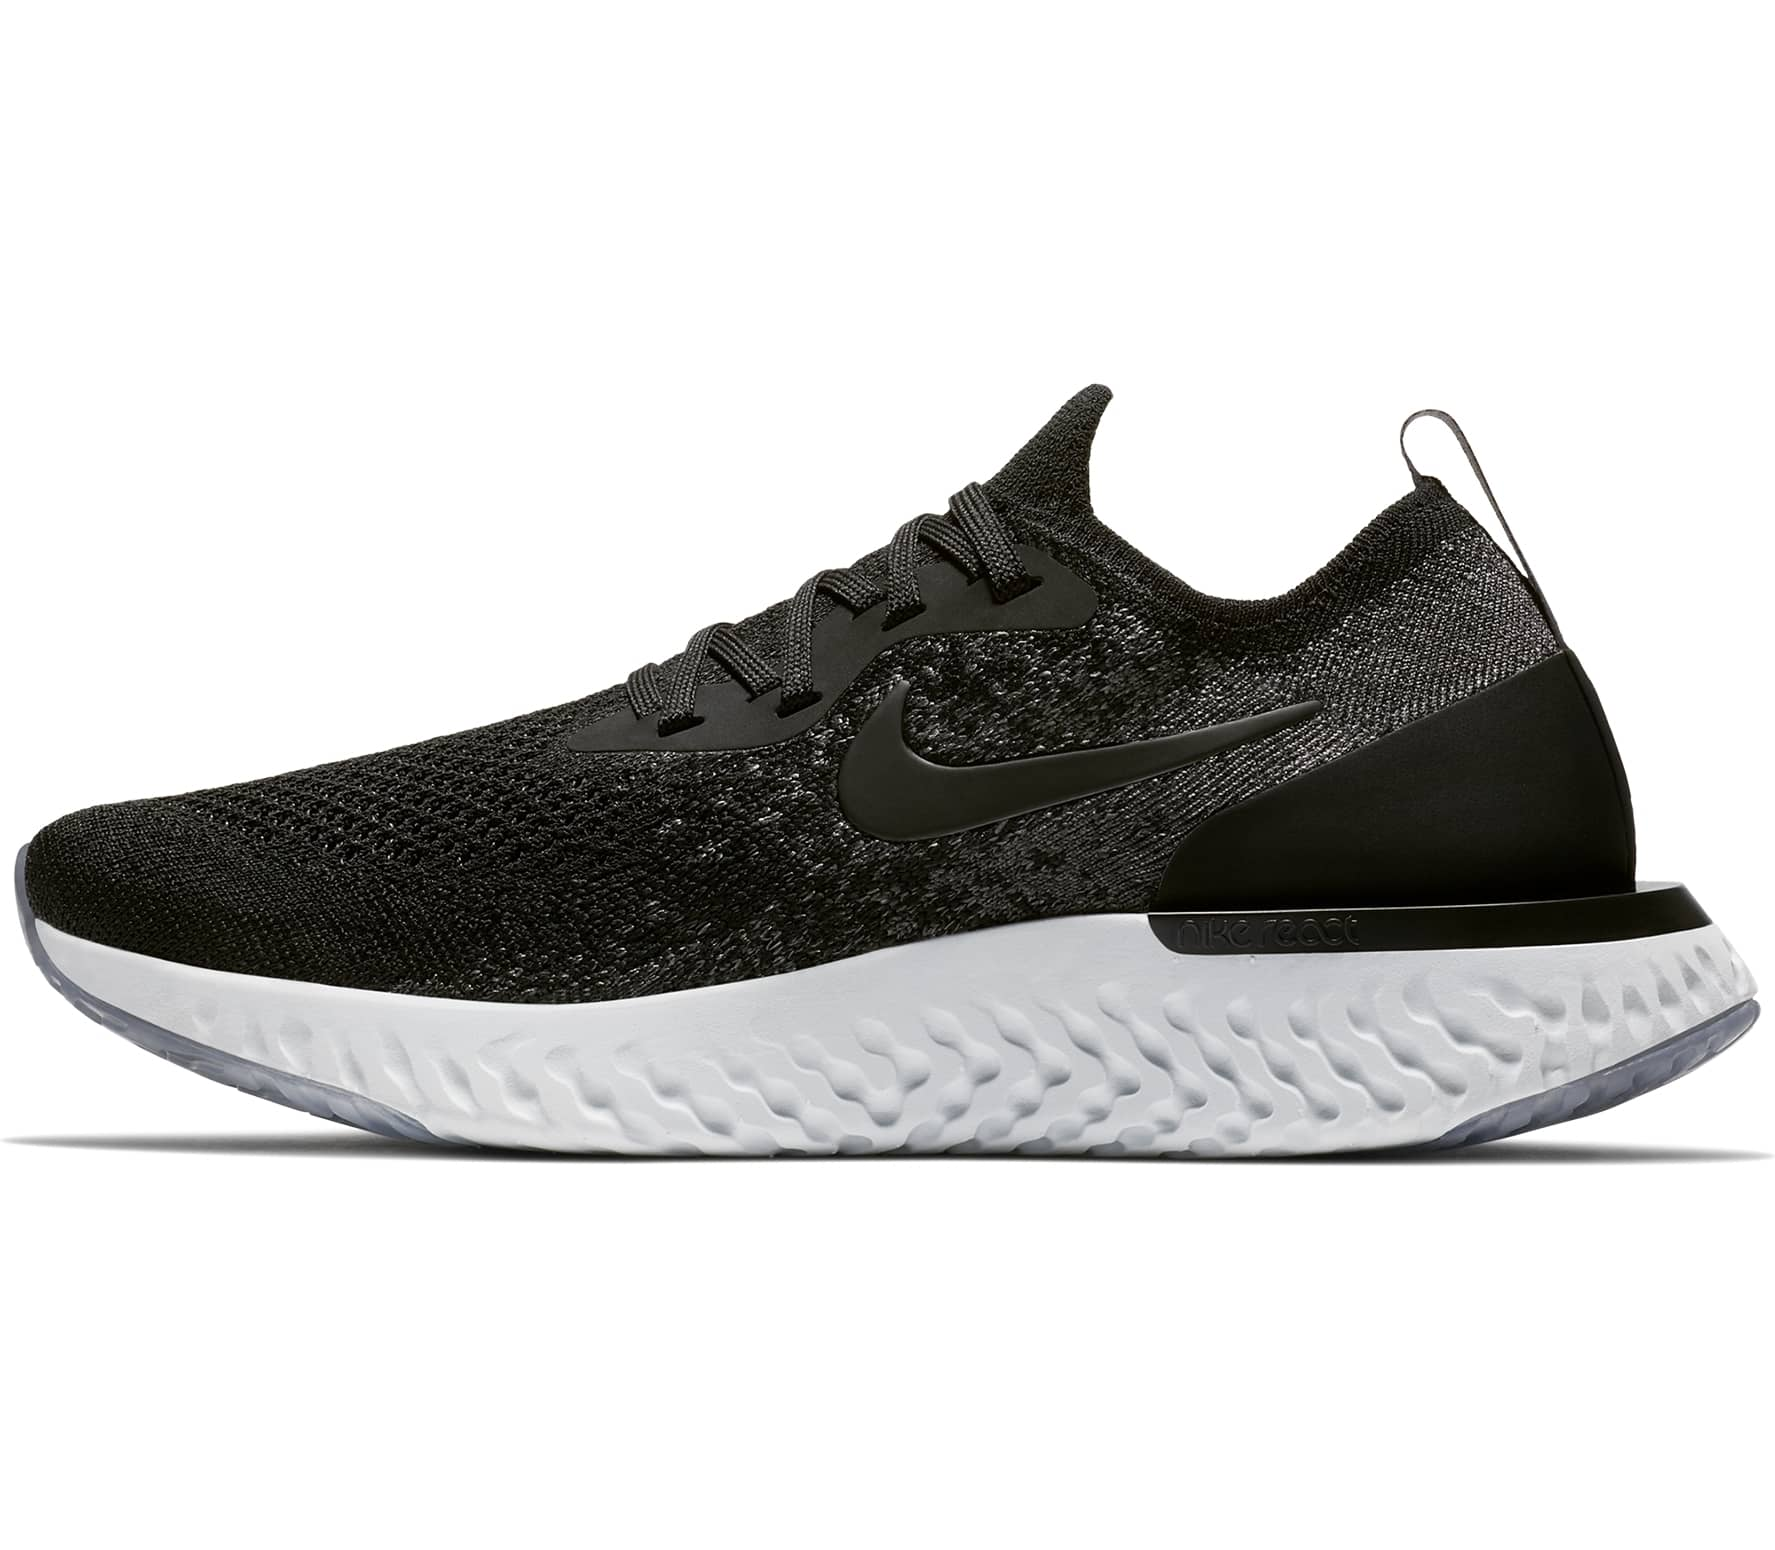 7924a9364543 Nike - Epic React Flyknit women s running shoes (black grey) - buy ...